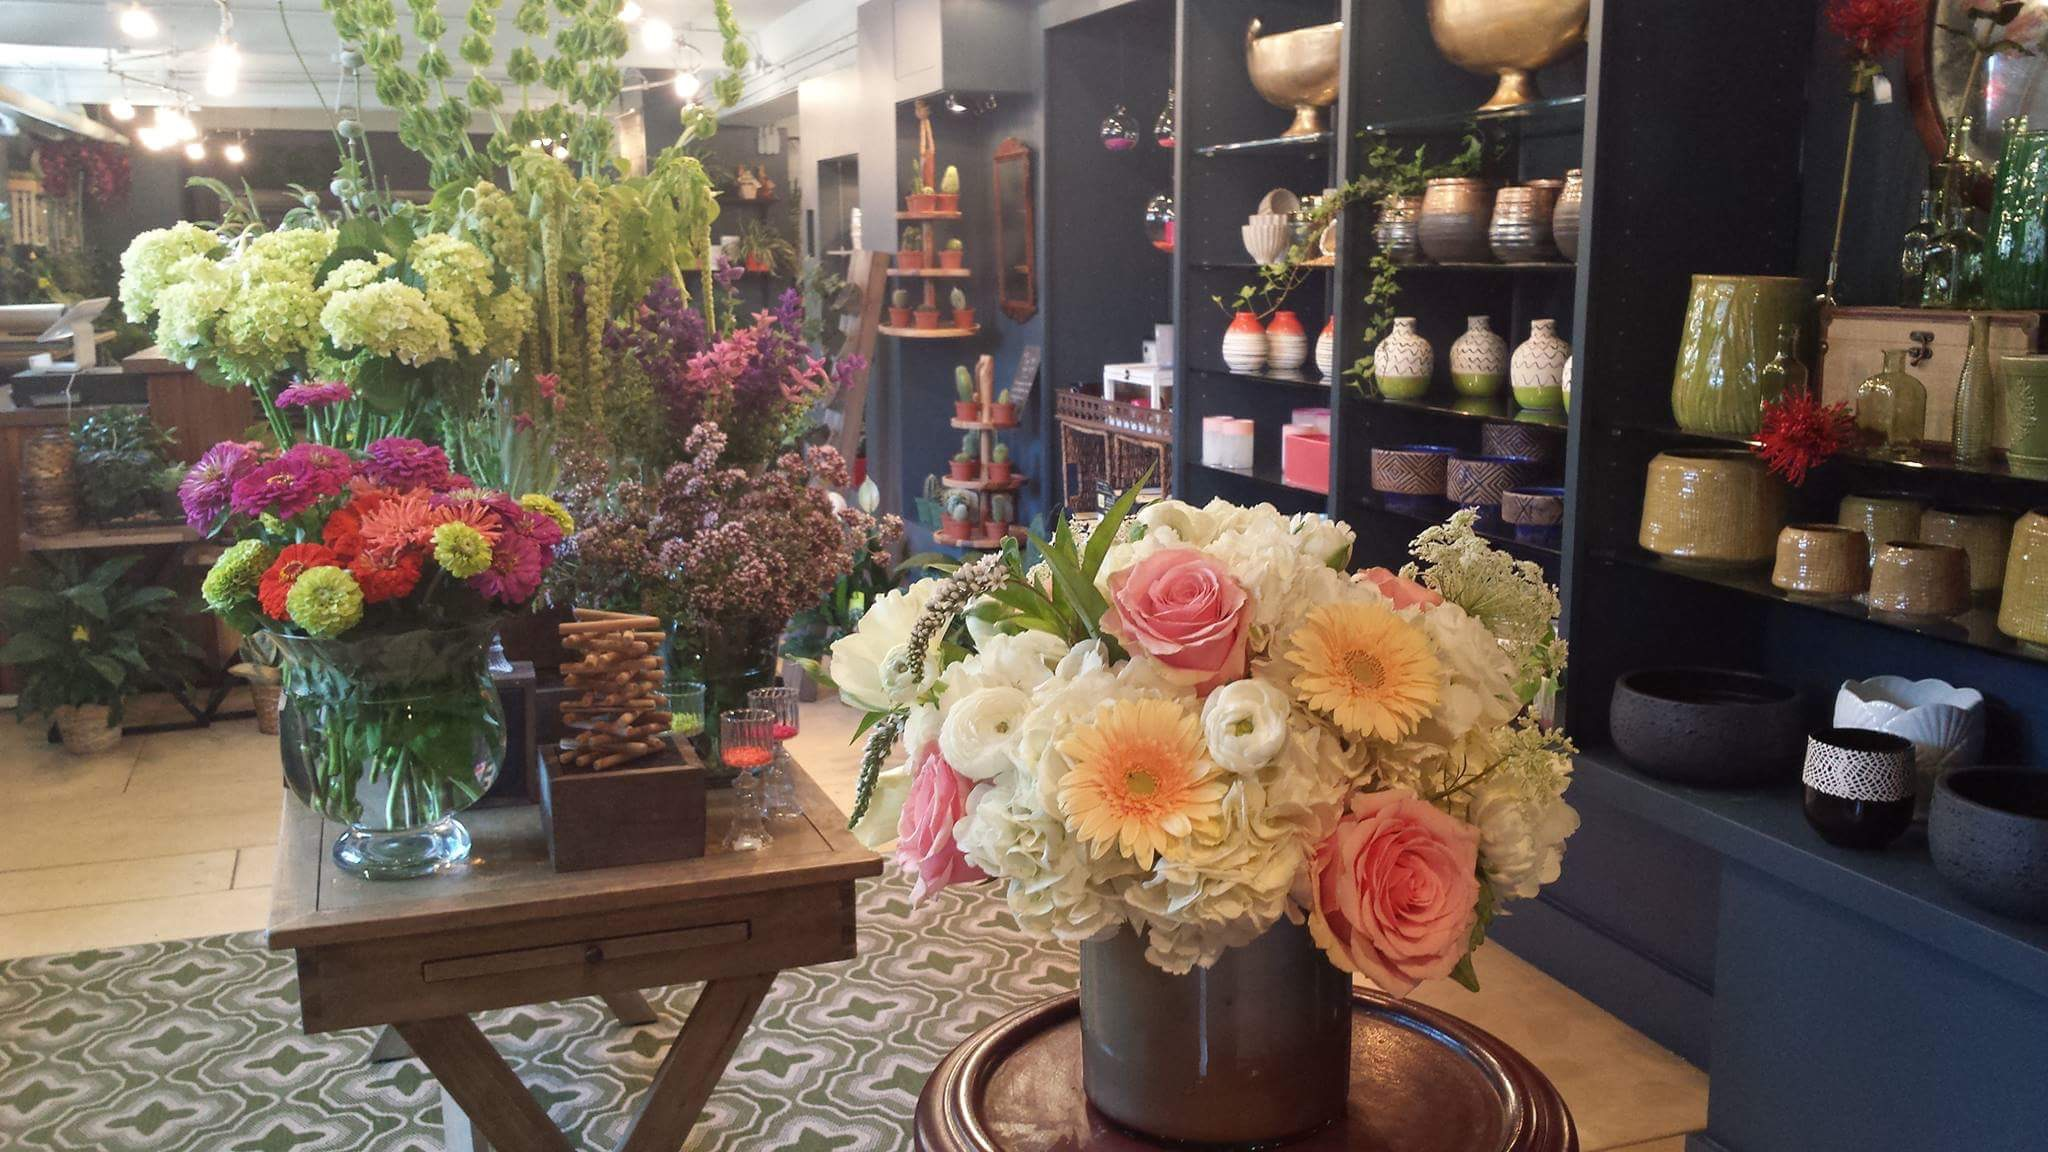 Welcome to ROBERTS FLOWERS OF HANOVER:  PROUDLY SERVING THE UPPER VALLEY FOR OVER 85 YEARS